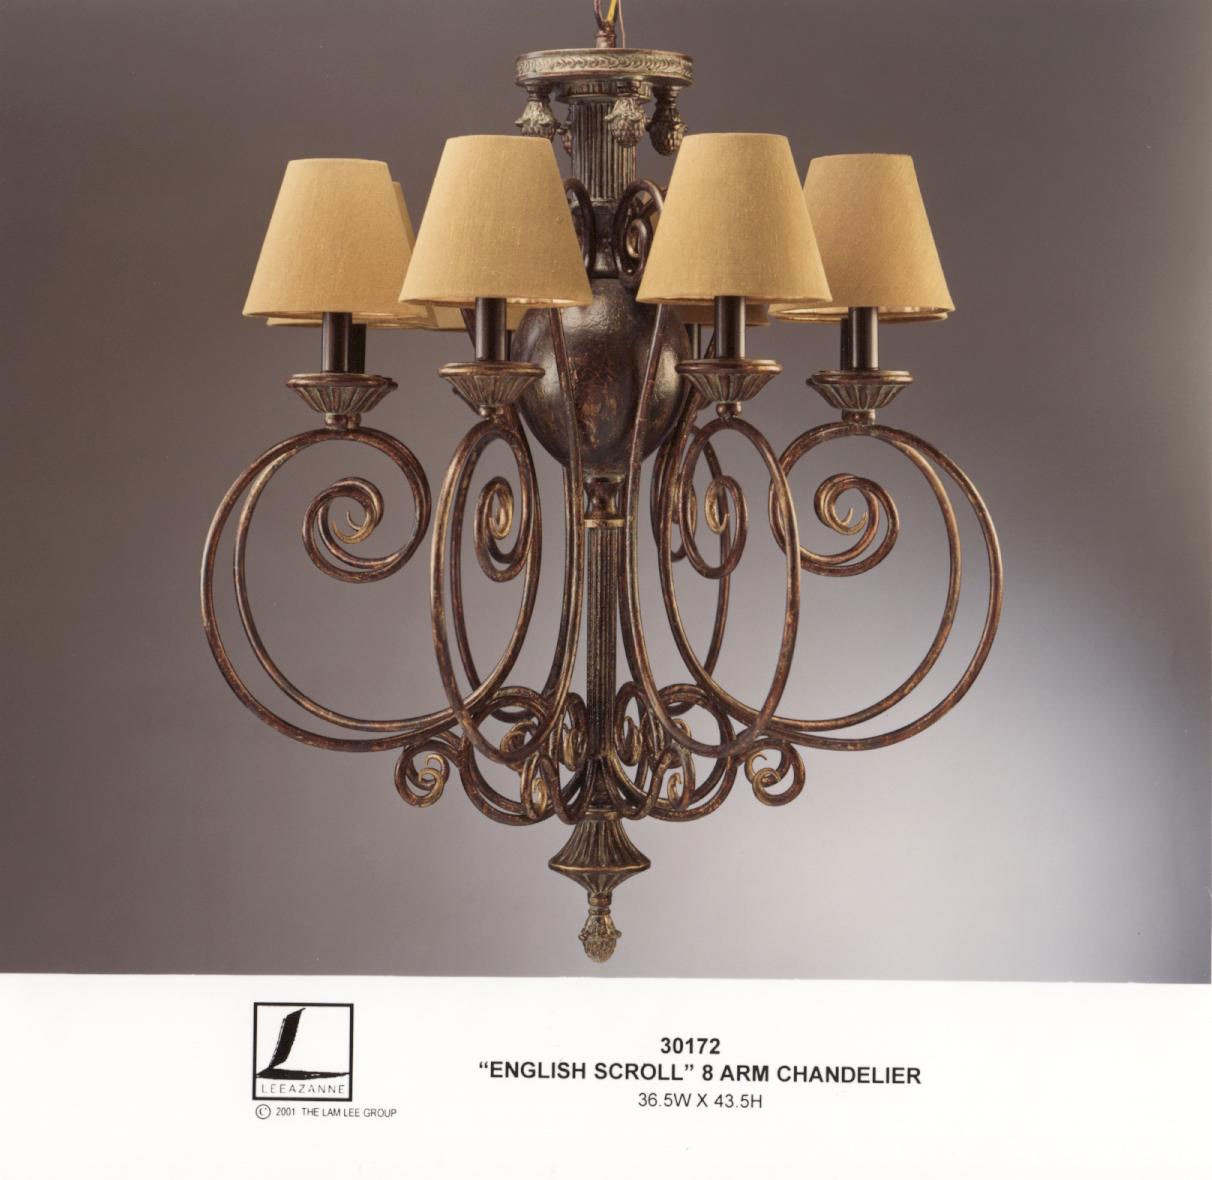 Chandelier english scroll 8 armd93x110h marco polo antiques zoom arubaitofo Image collections